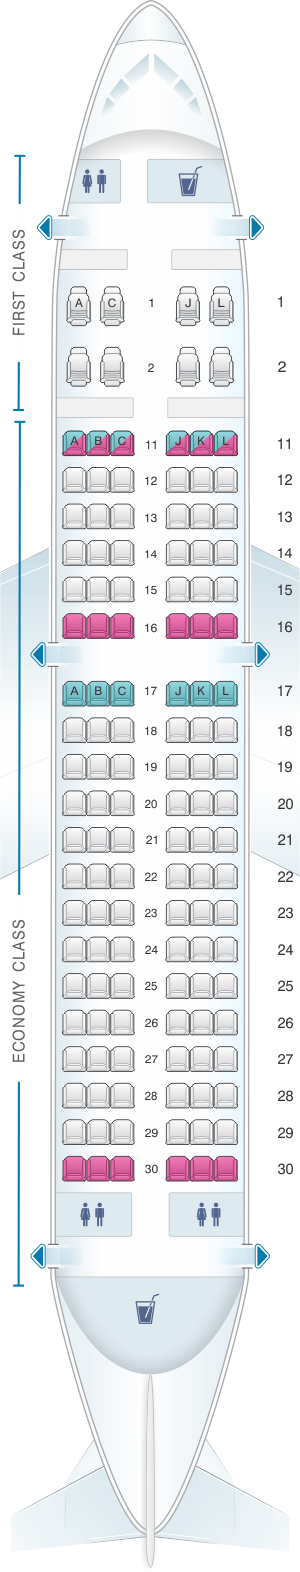 Seat map for Air China Airbus A319 100